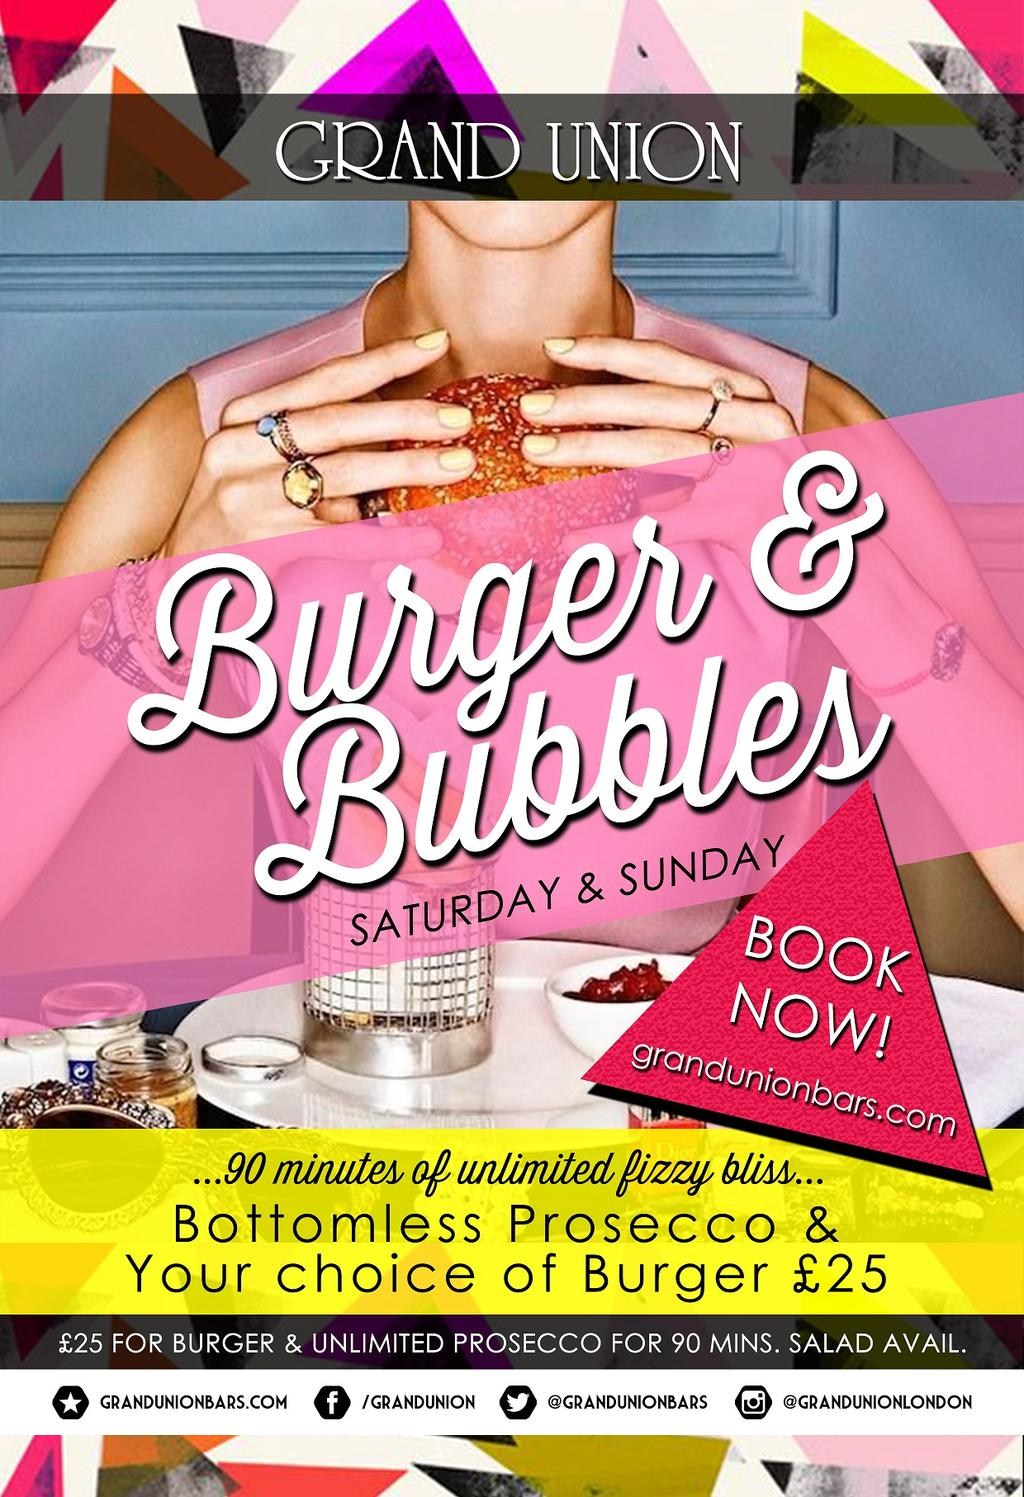 Burger & Bubbles - Paddington